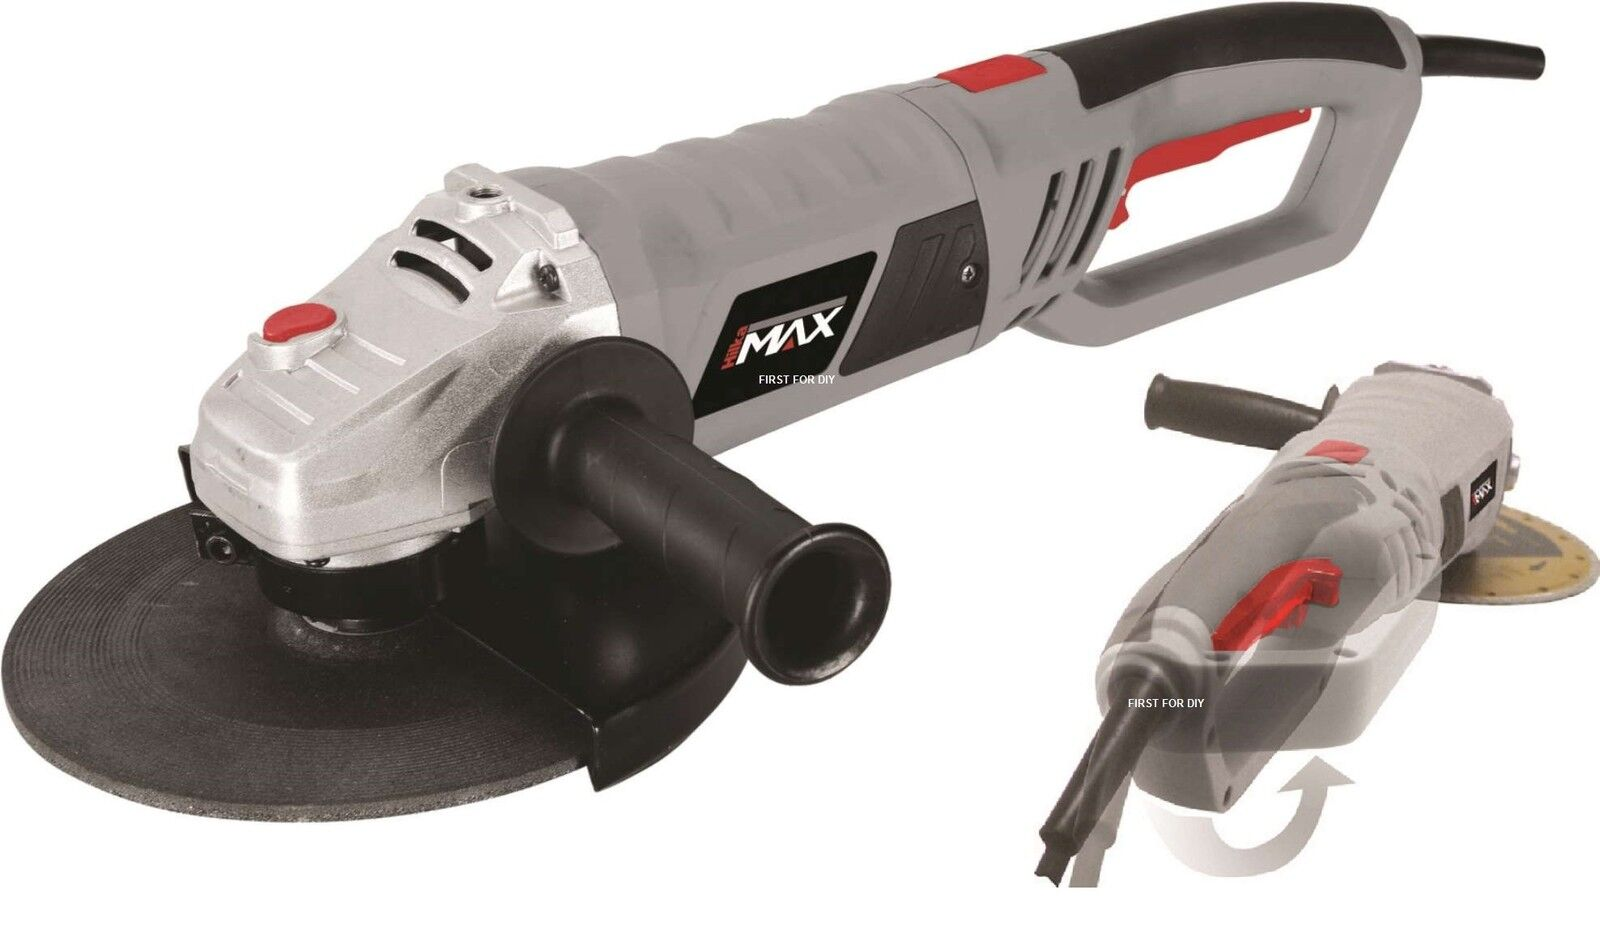 HEAVY DUTY HILKA 2400W 9  230MM ELECTRIC ANGLE GRINDER 6500RPM 180 DEGREE HANDLE